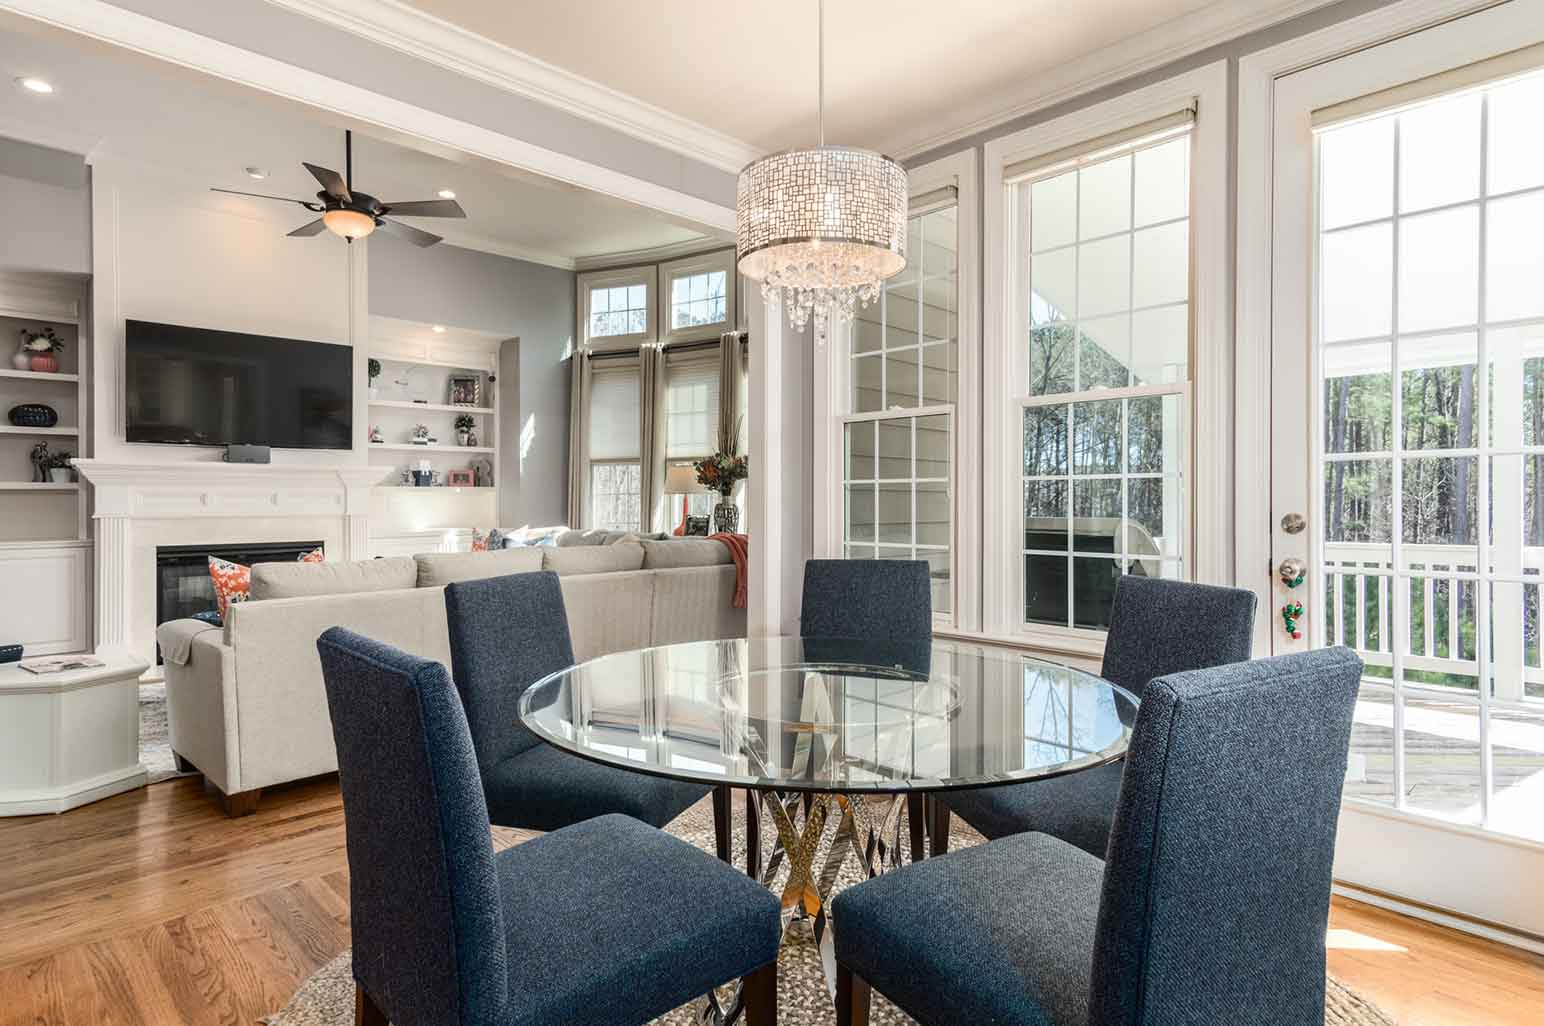 Interior Design Tips To Help Enhance The Beauty Of Your Home